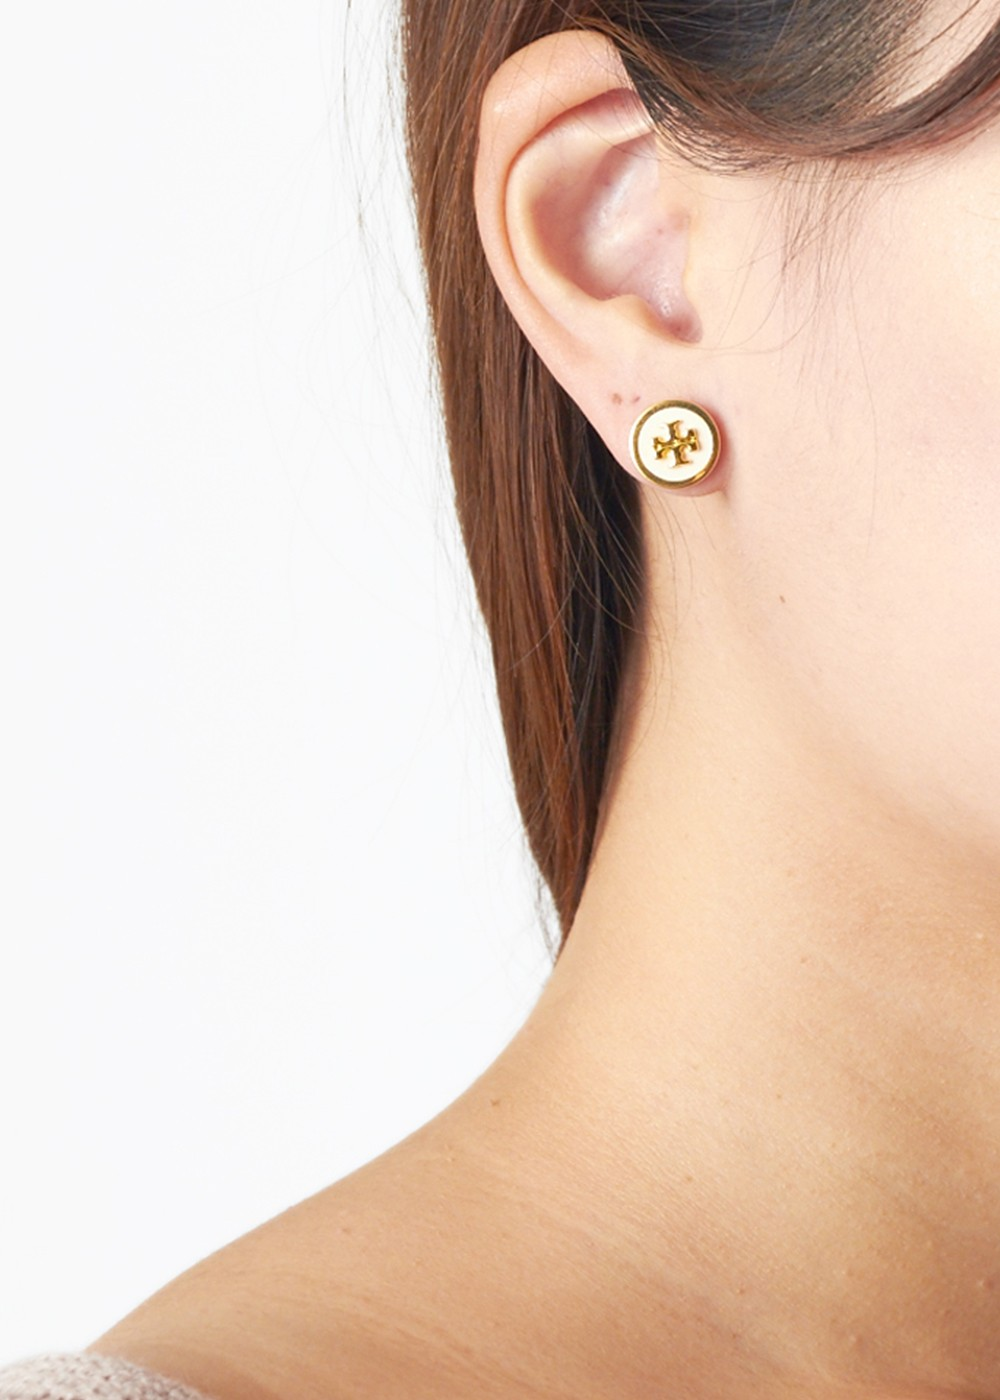 TORY BURCH|トリバーチ|ACCESSORY|アクセサリー|LACQUERED RAISED LOG STUD EAARING